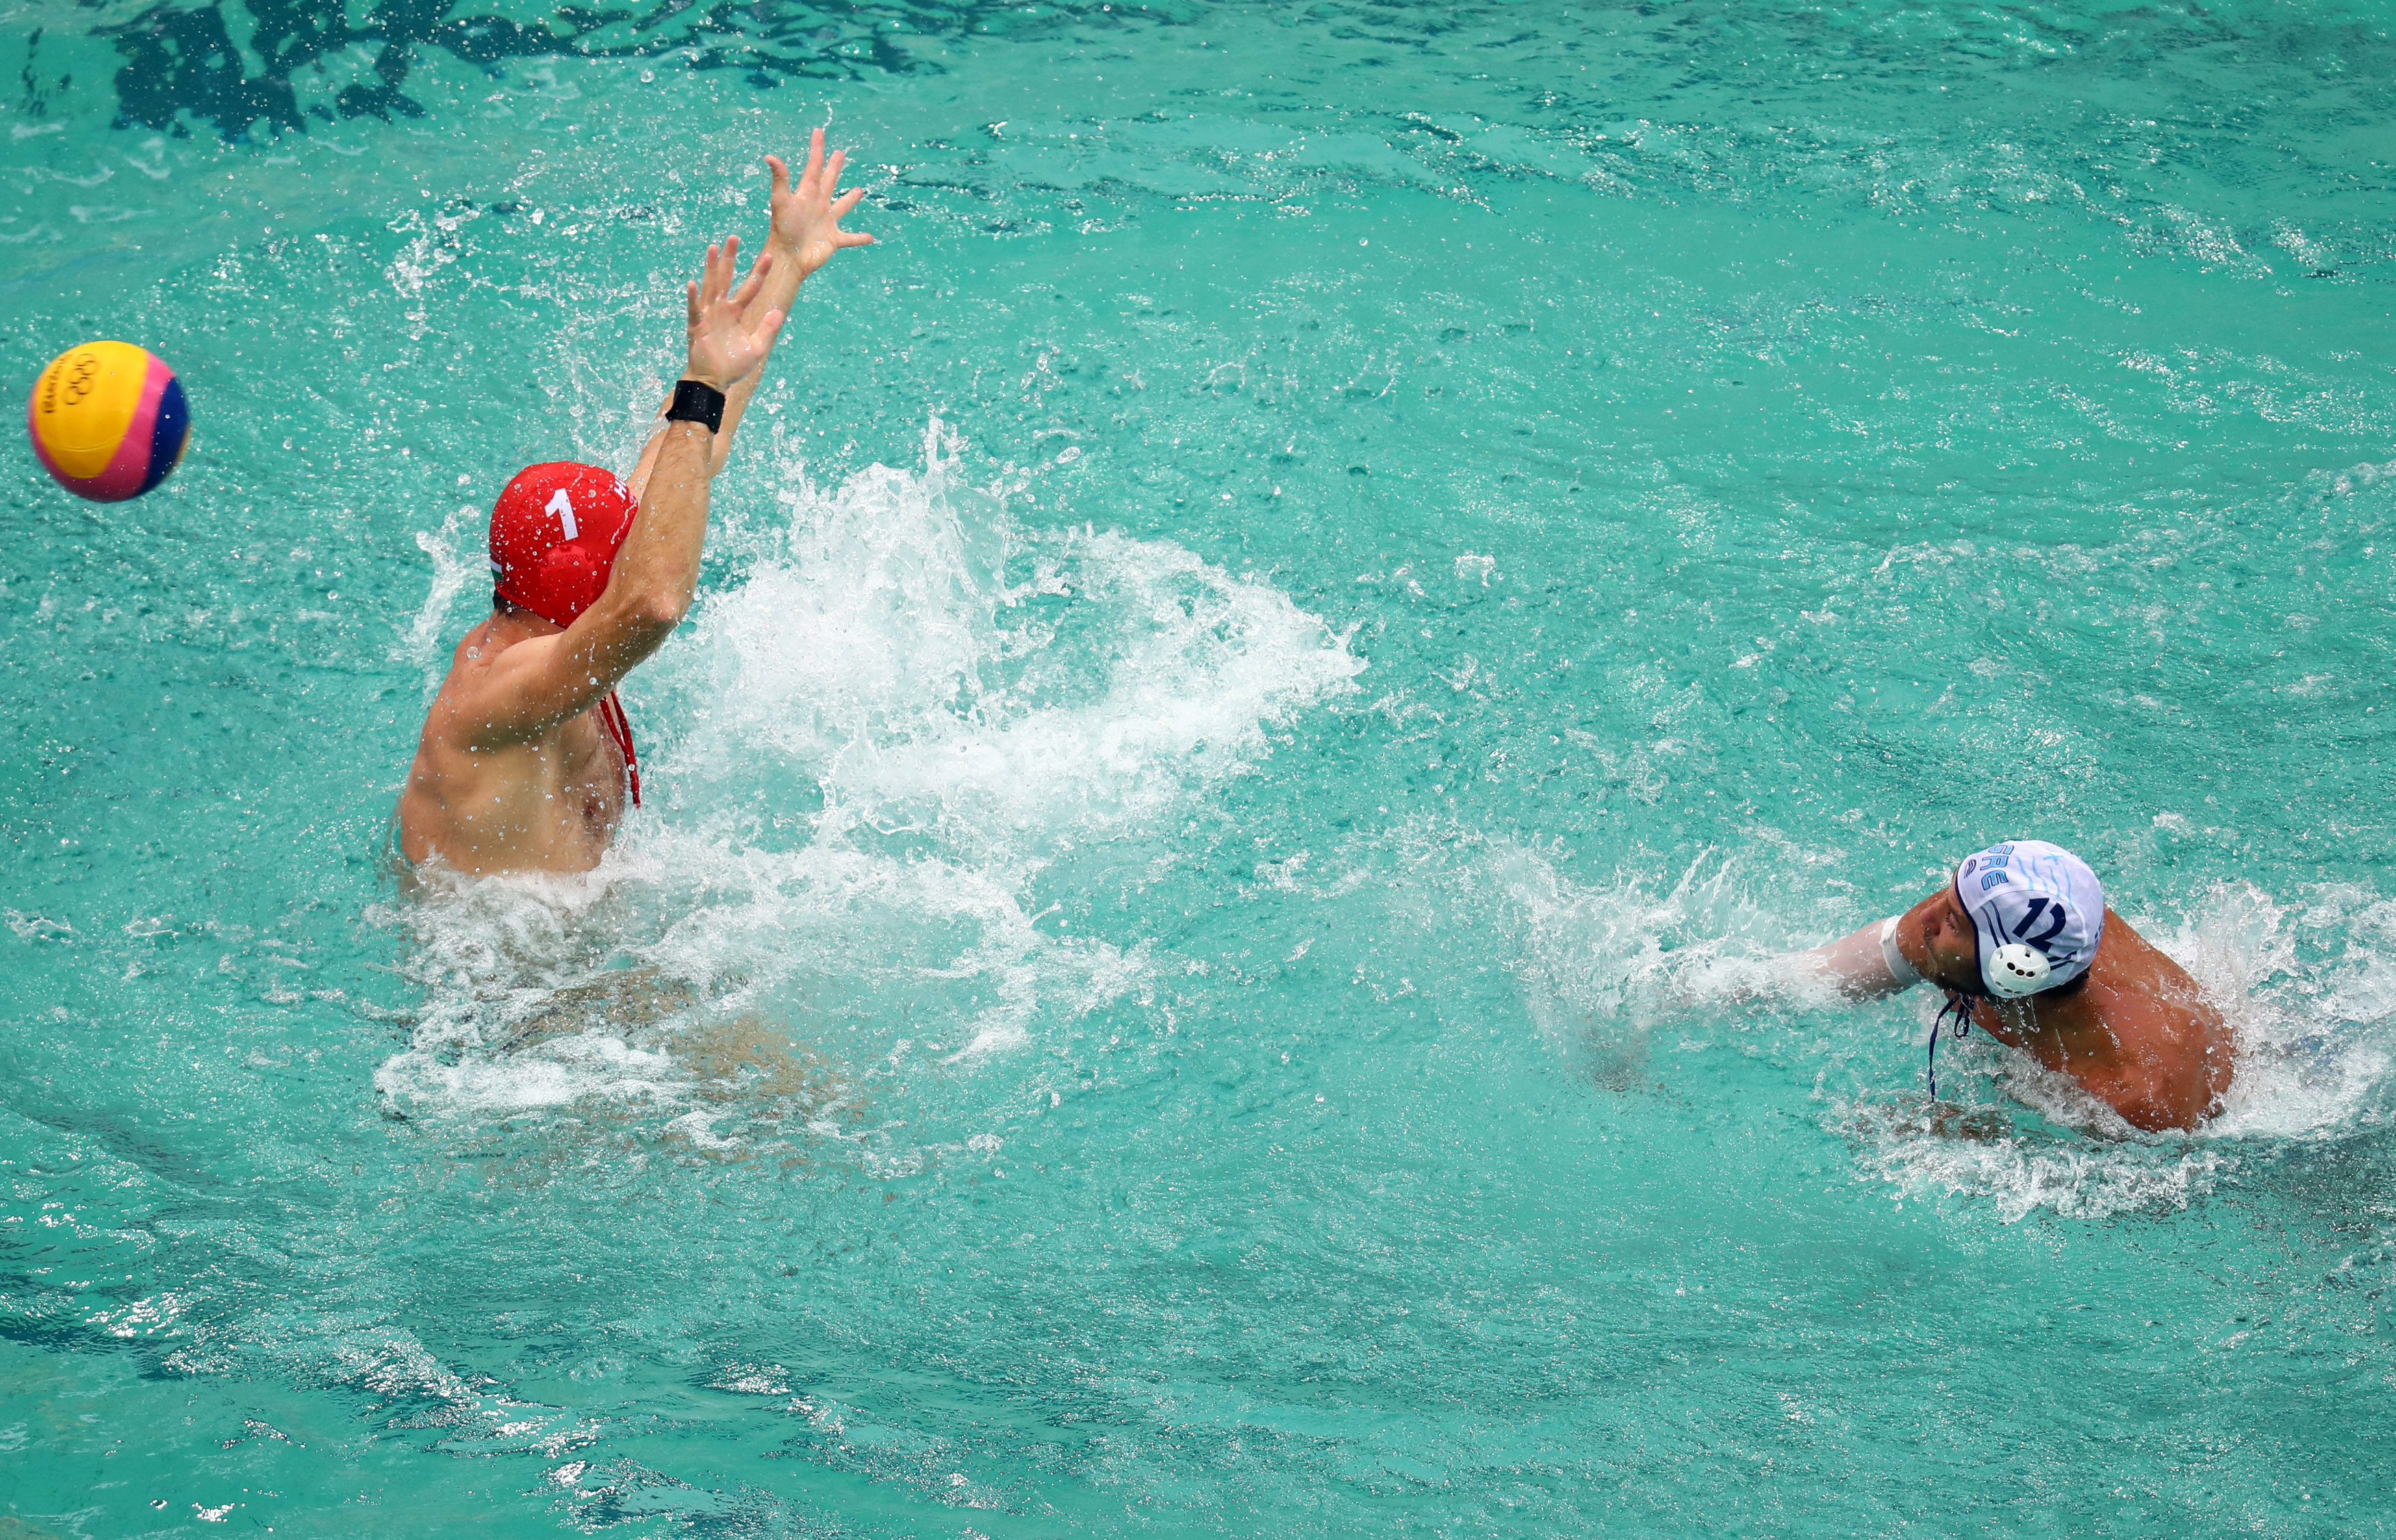 Water Polo - Men's Preliminary Round - Group A Greece v Hungary